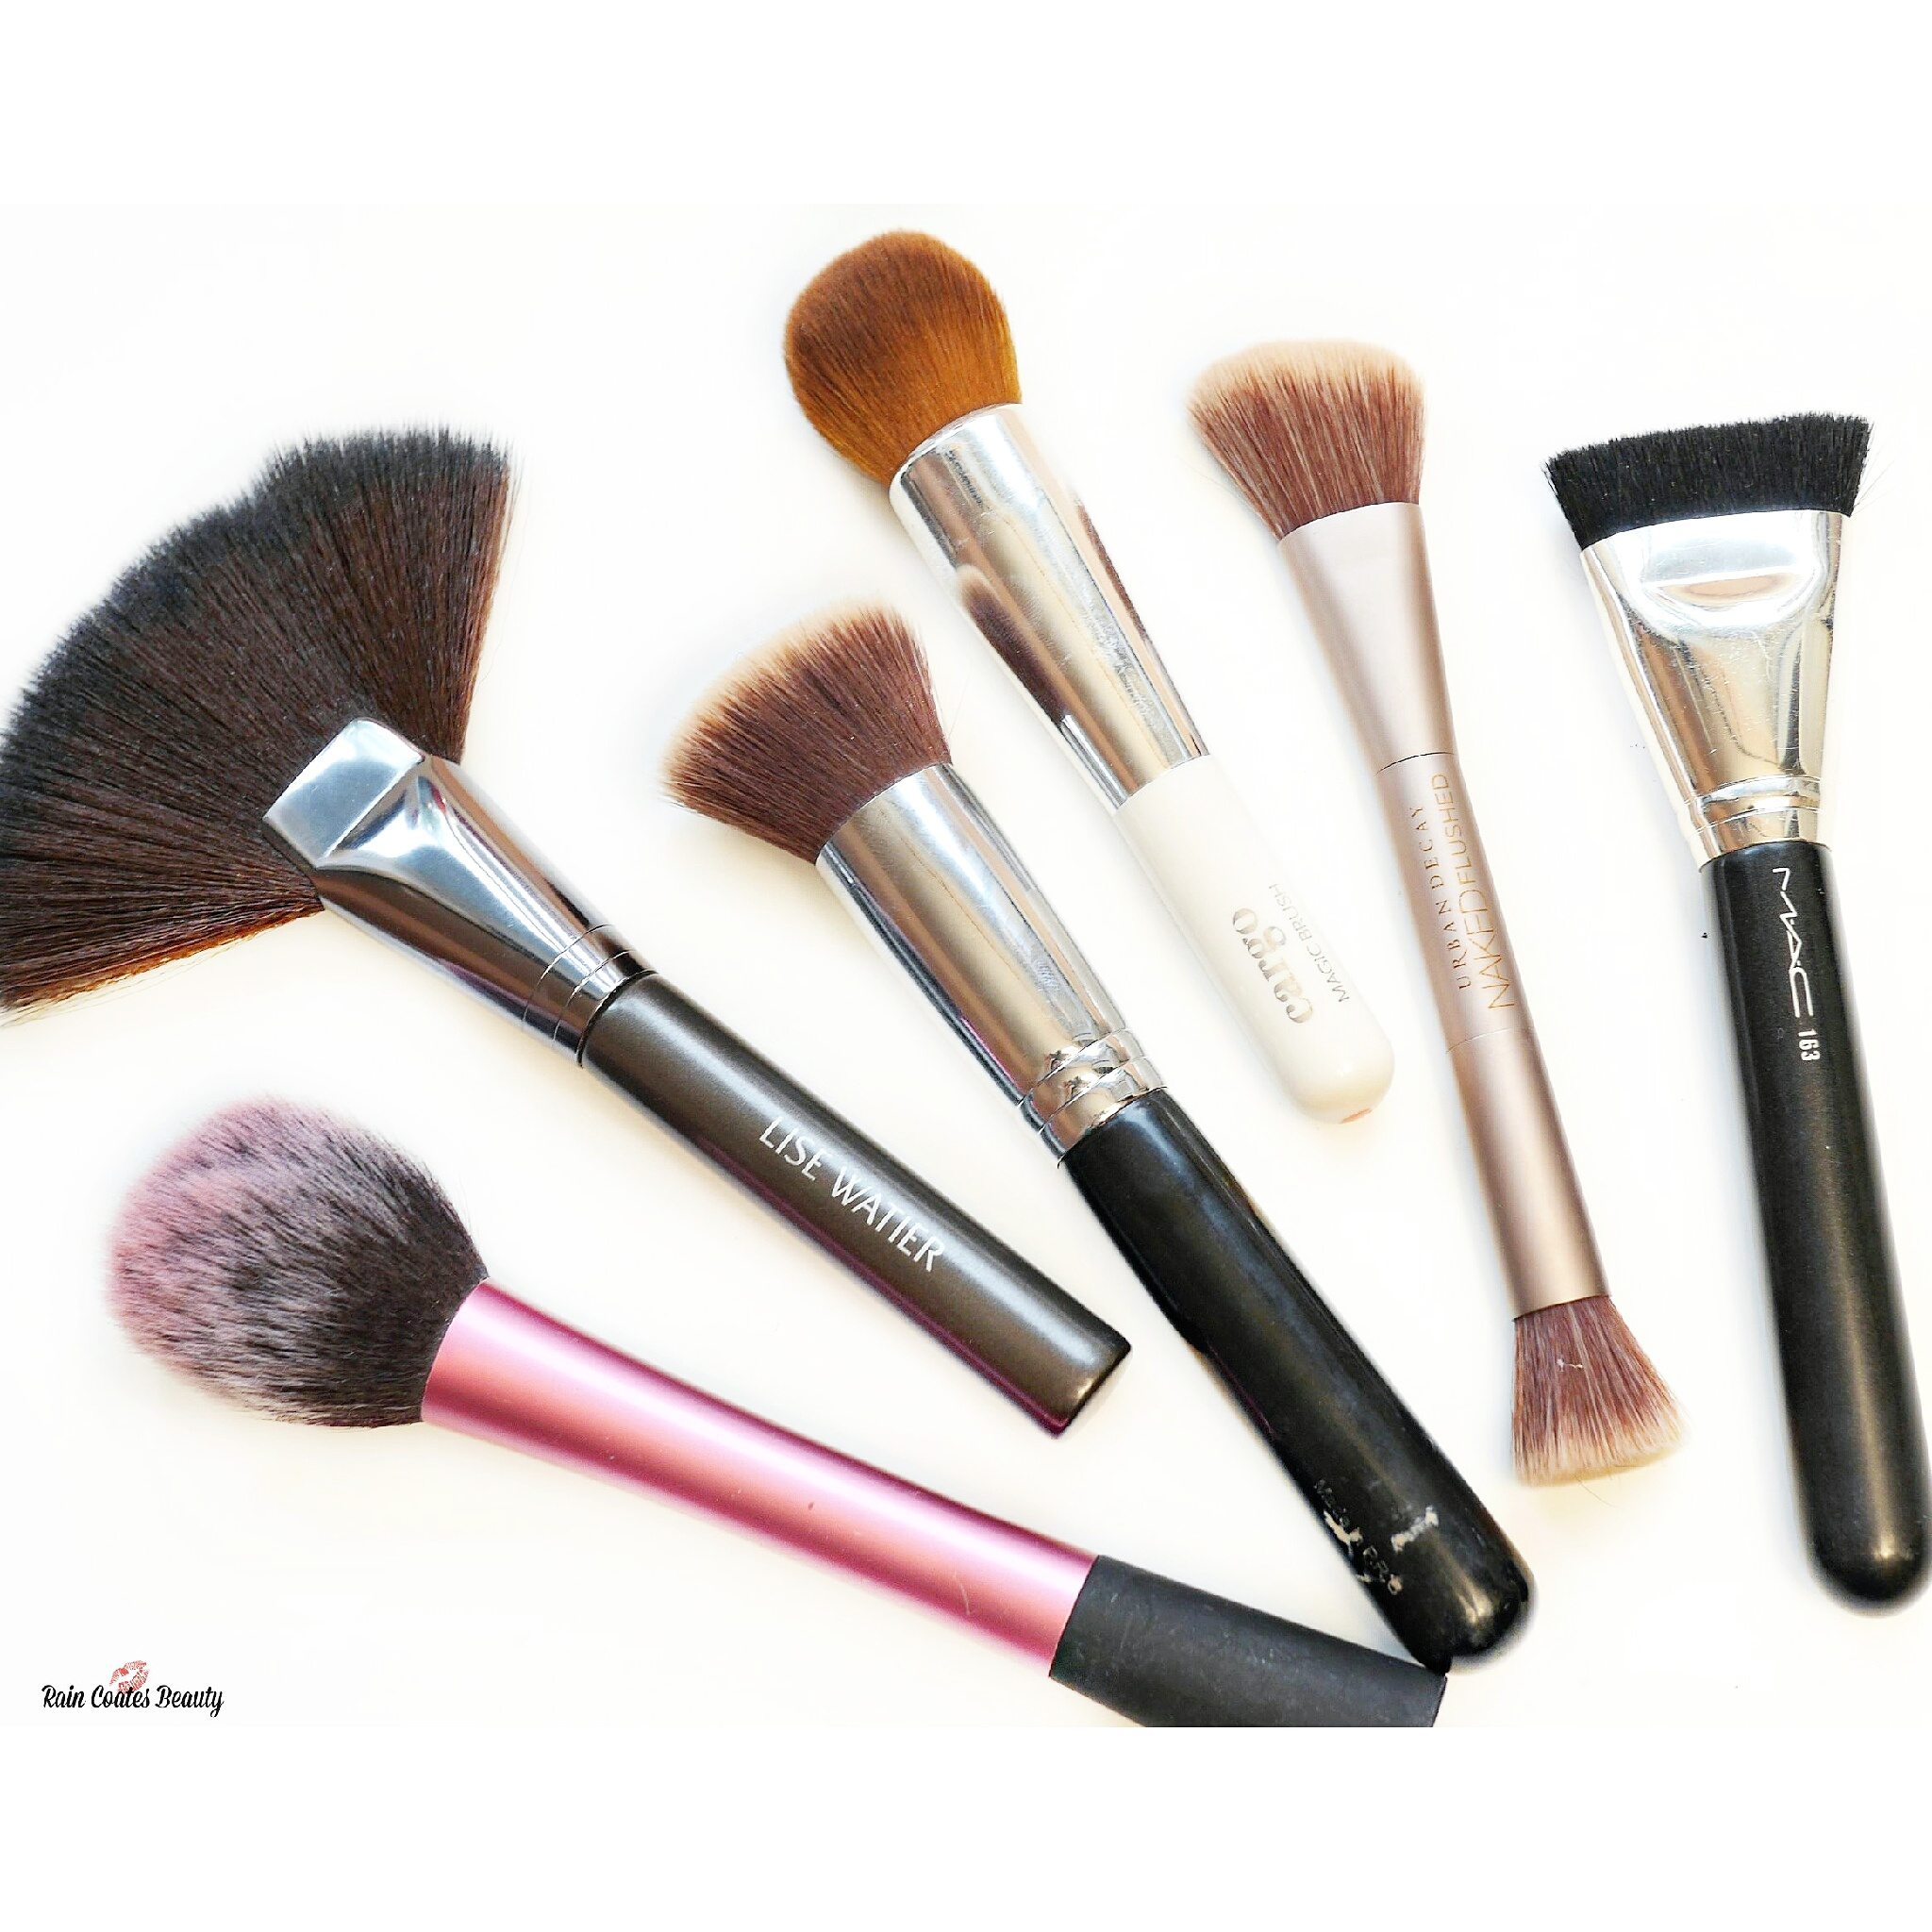 My Current Favourite Face Brushes